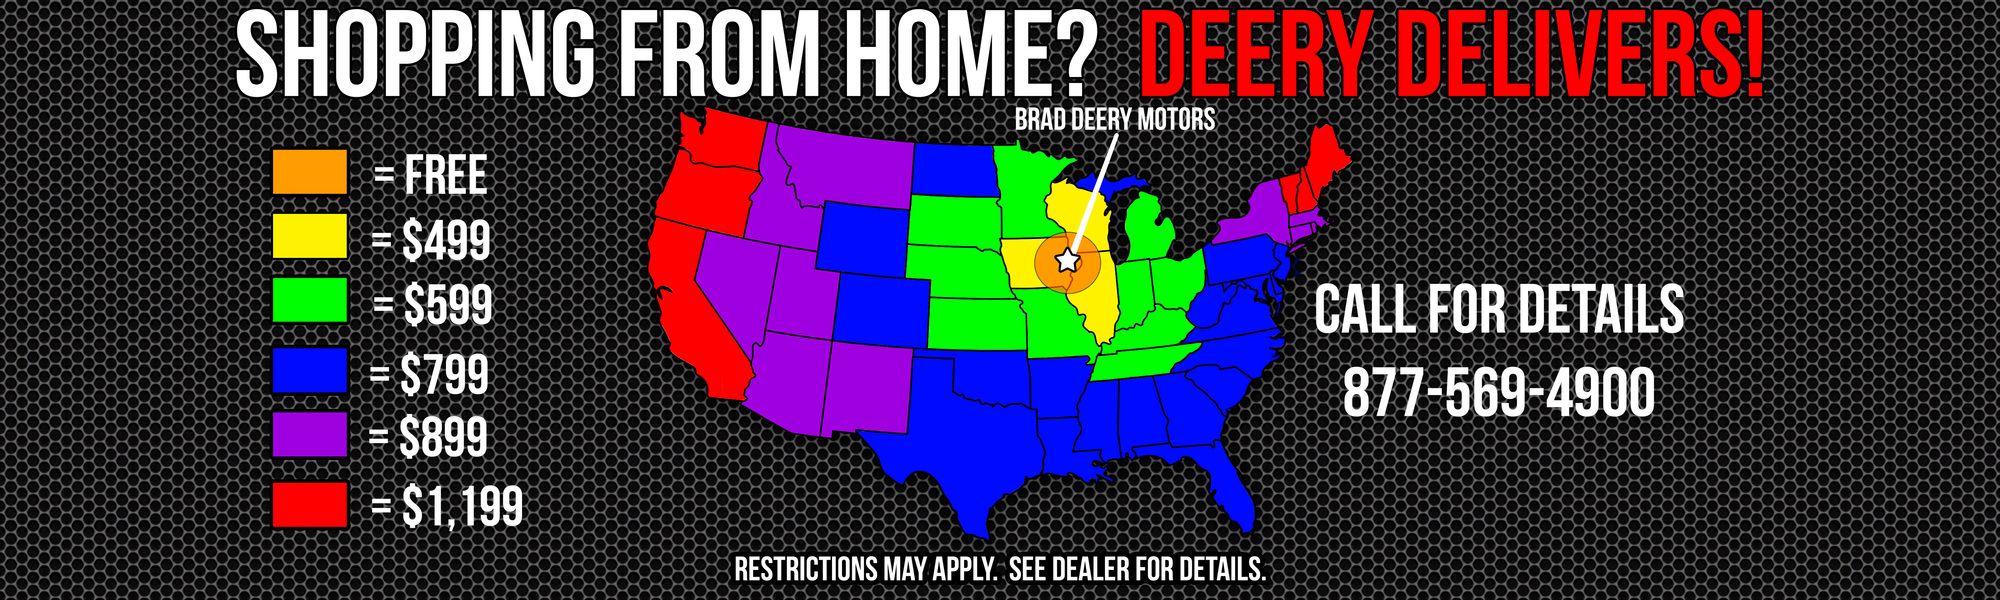 Shop from Home and Brad Deery Motors Delivers